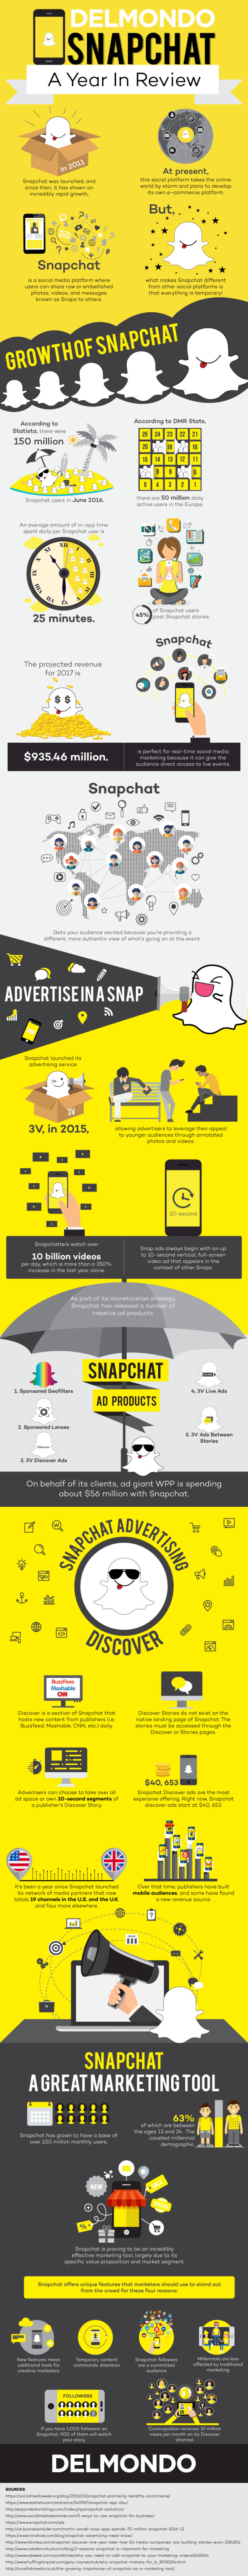 Snapchat: A Year in Review [Infographic] | Social Media Today